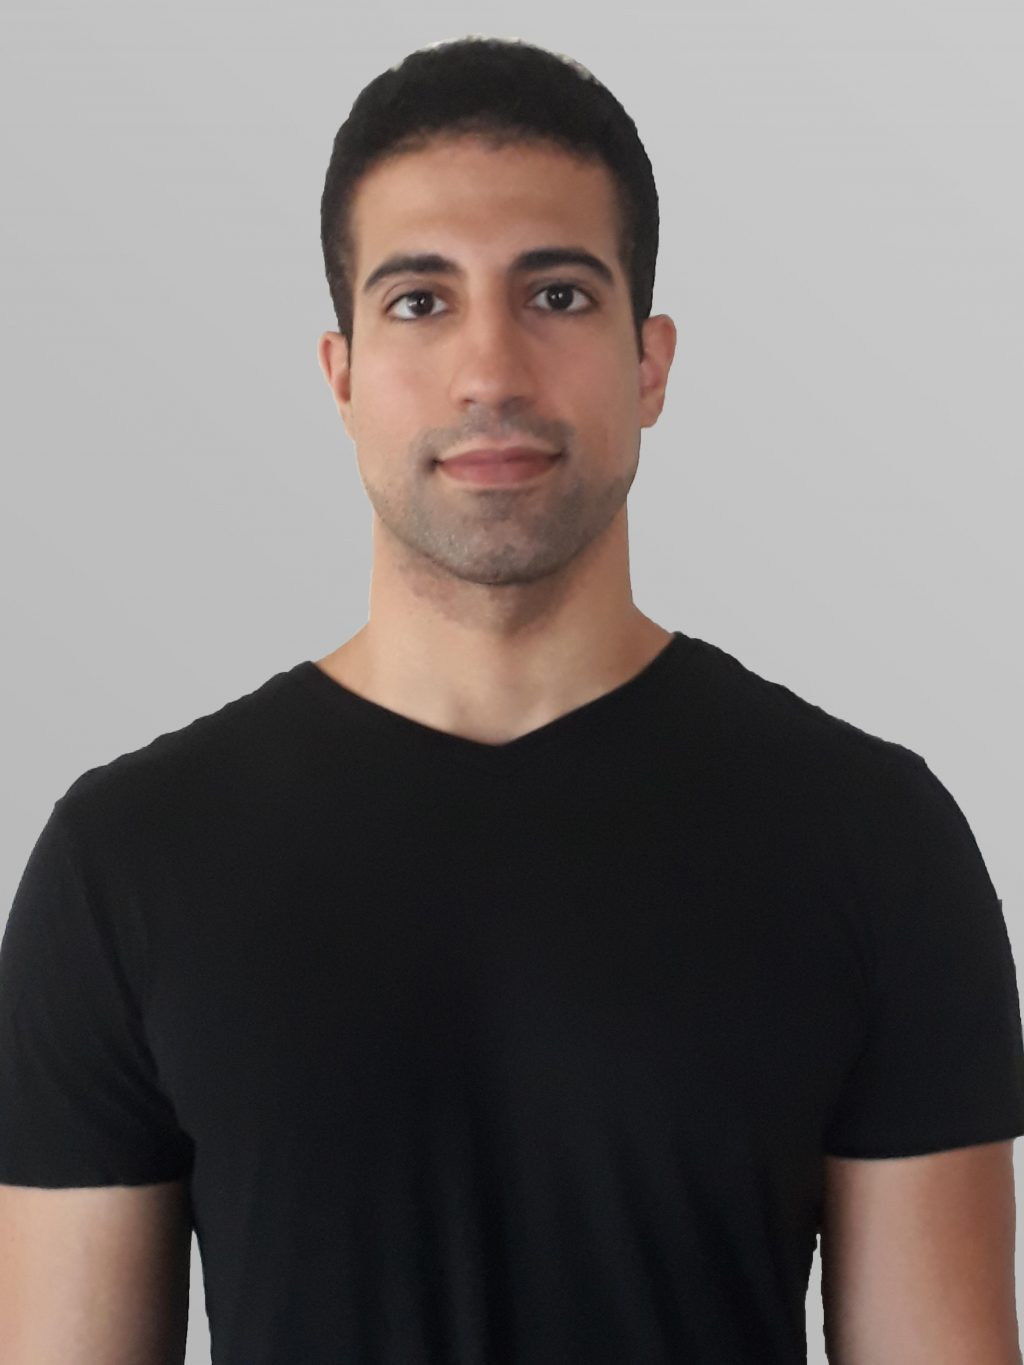 Personal Trainer Burke, Virginia - Richard Moujaes